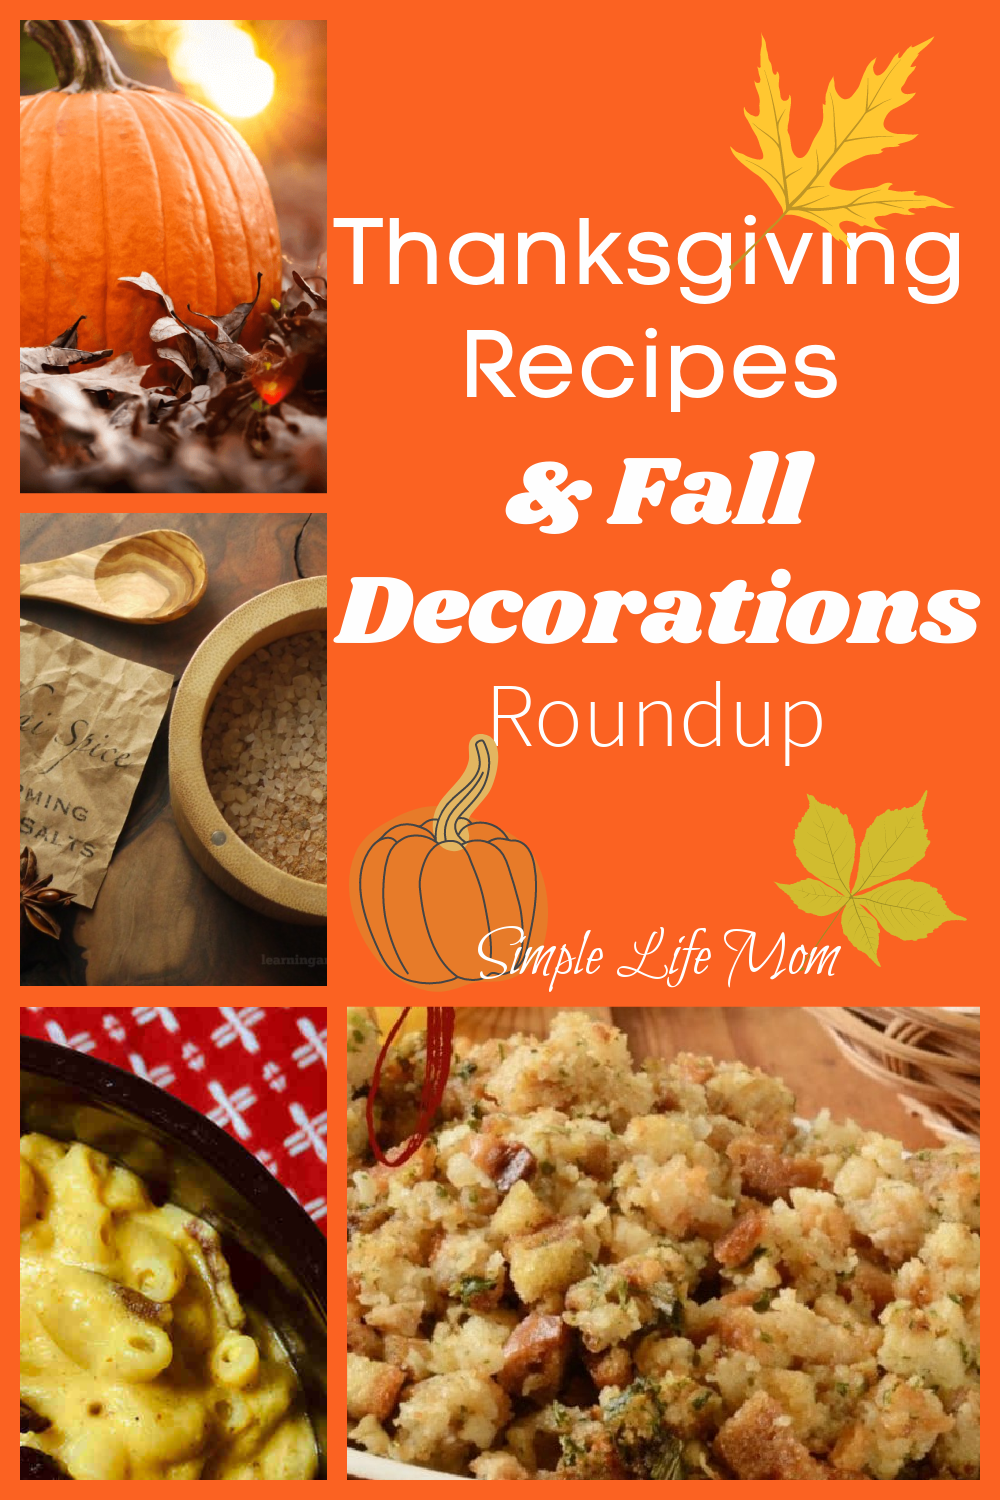 Thanksgiving Recipes and Fall Decorations Round Up from Simple Life Mom